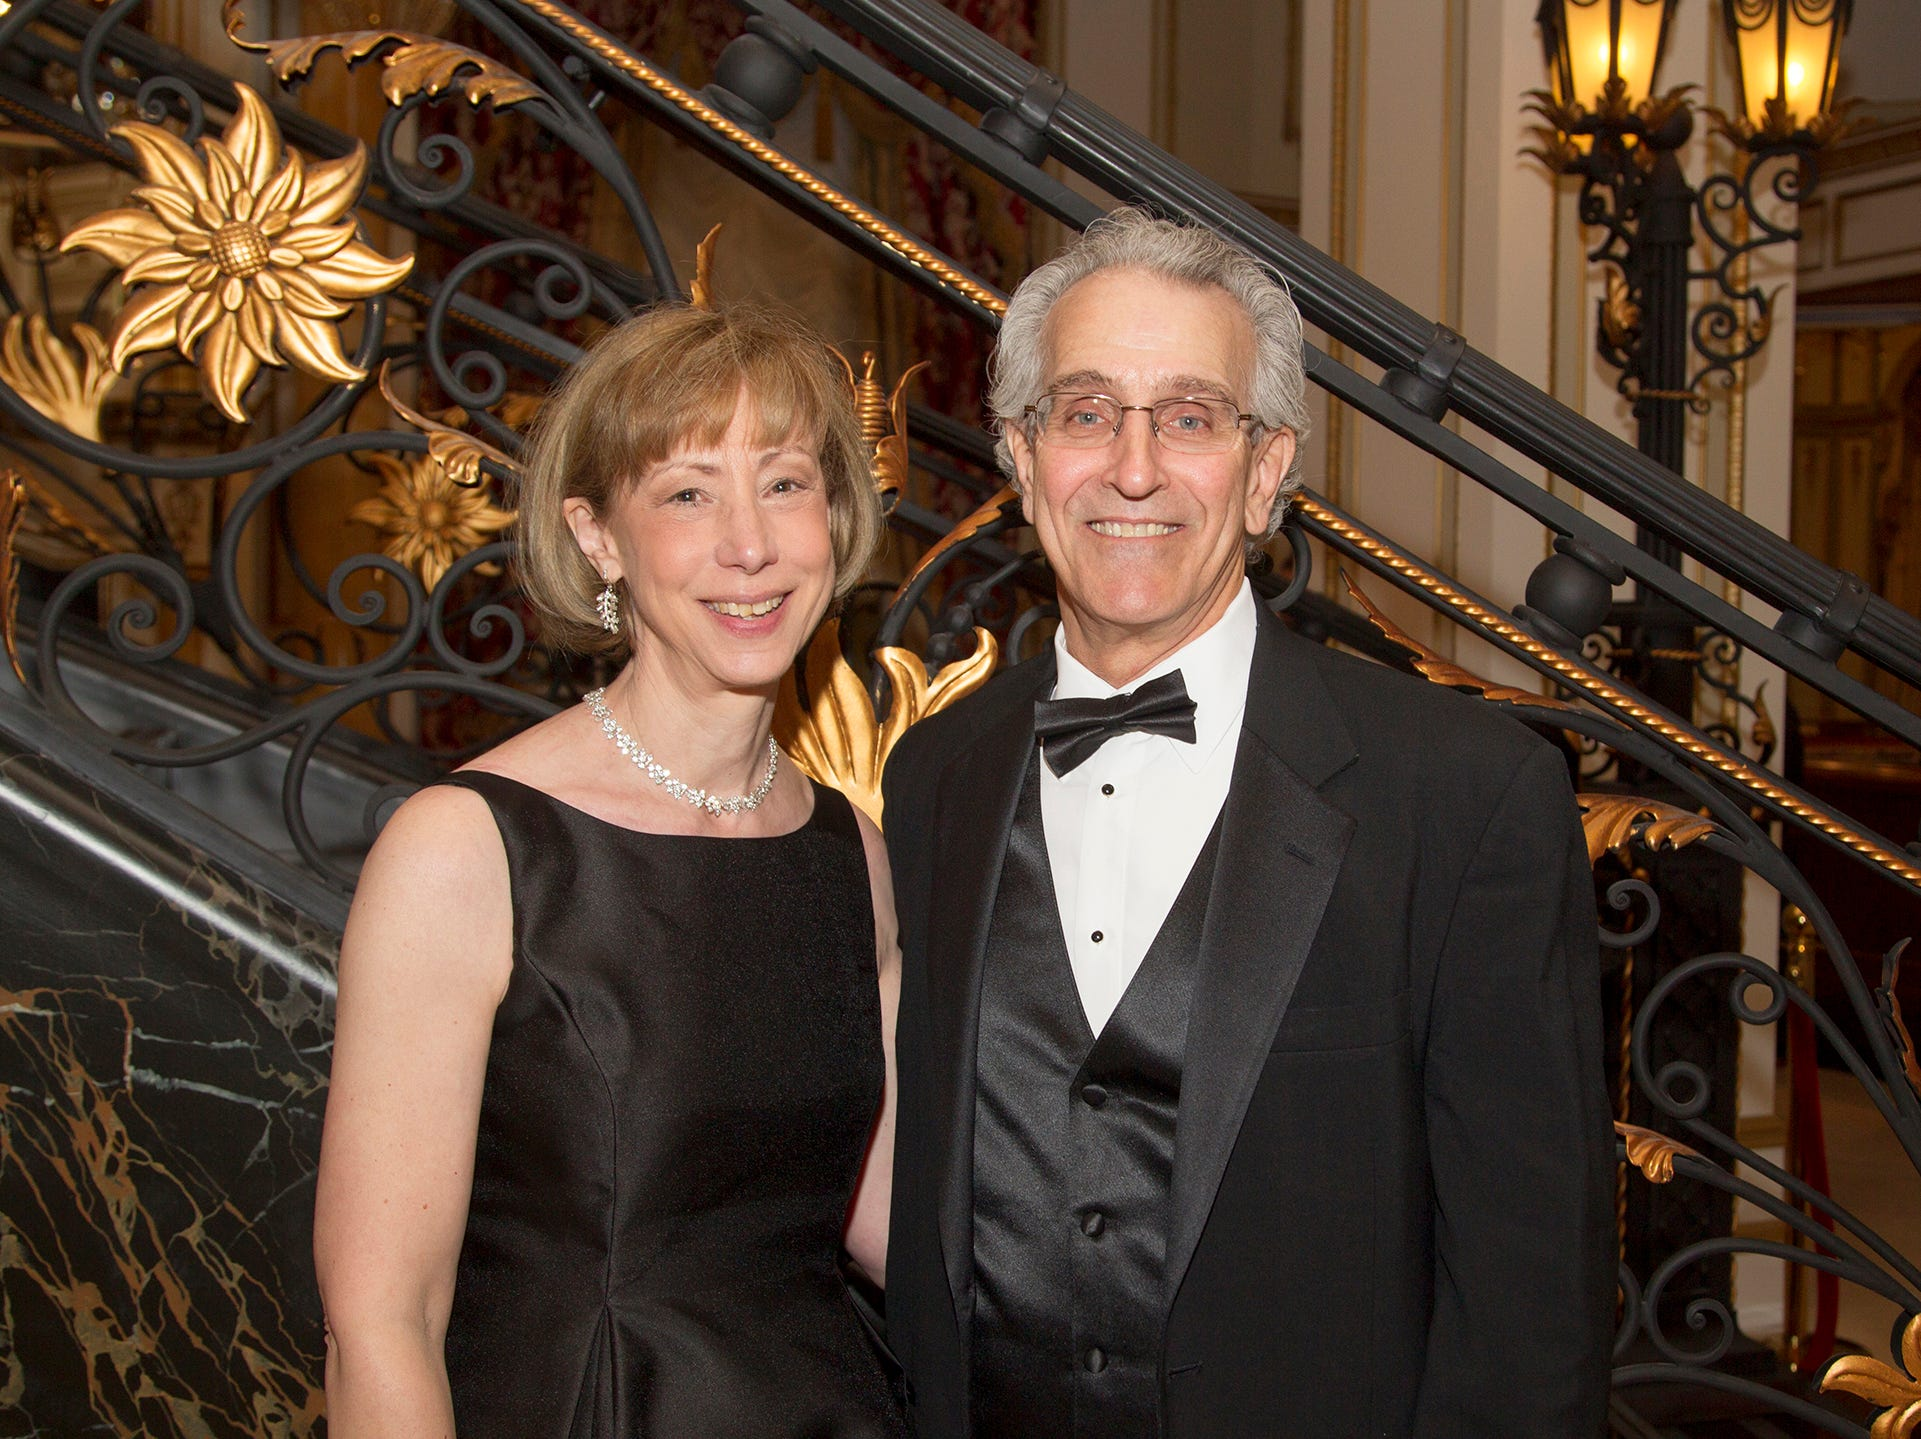 Ludmila and Mark Golad. The 72nd Annual Valley Ball gala at The Legacy Castle in Pompton Plains. 11/16/2018